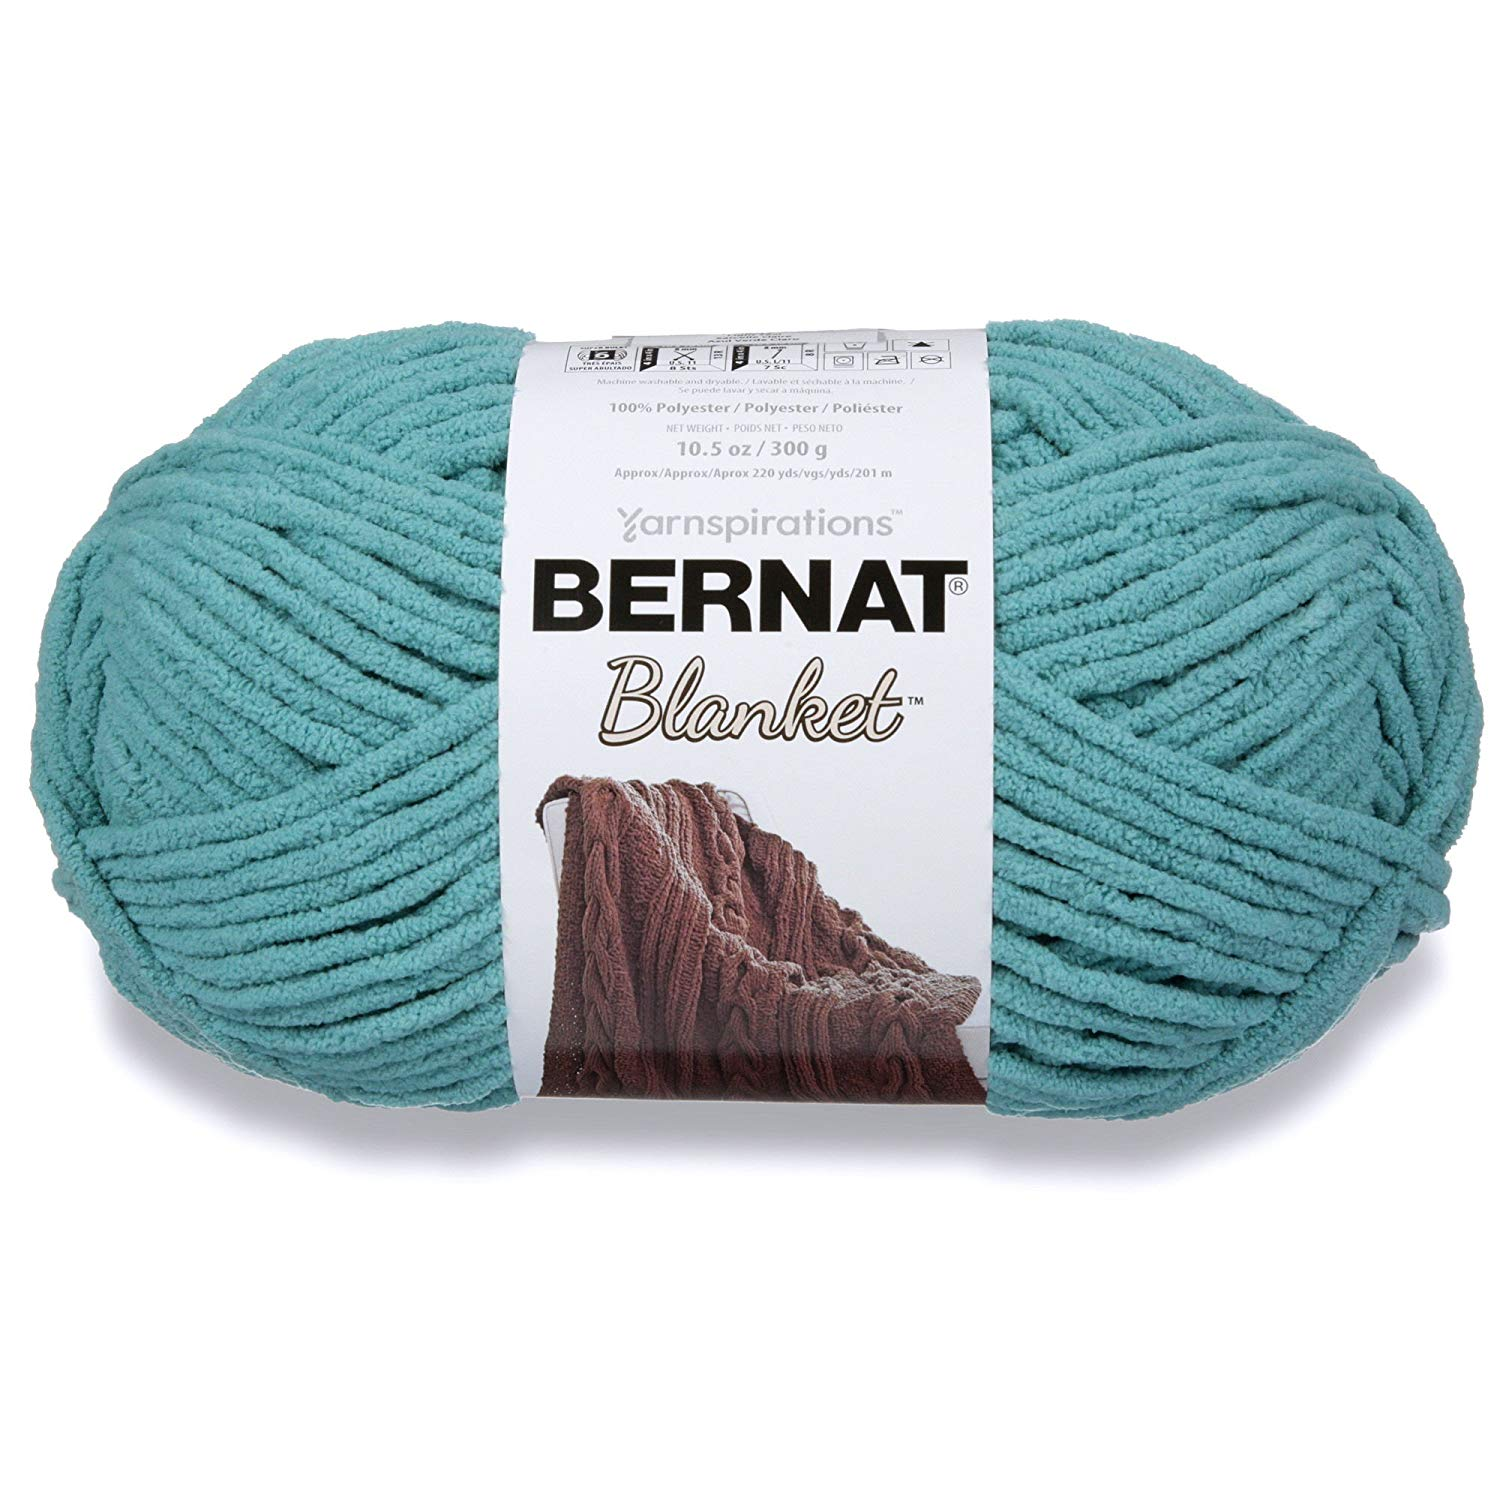 Bernat Blanket Yarn, Light Teal